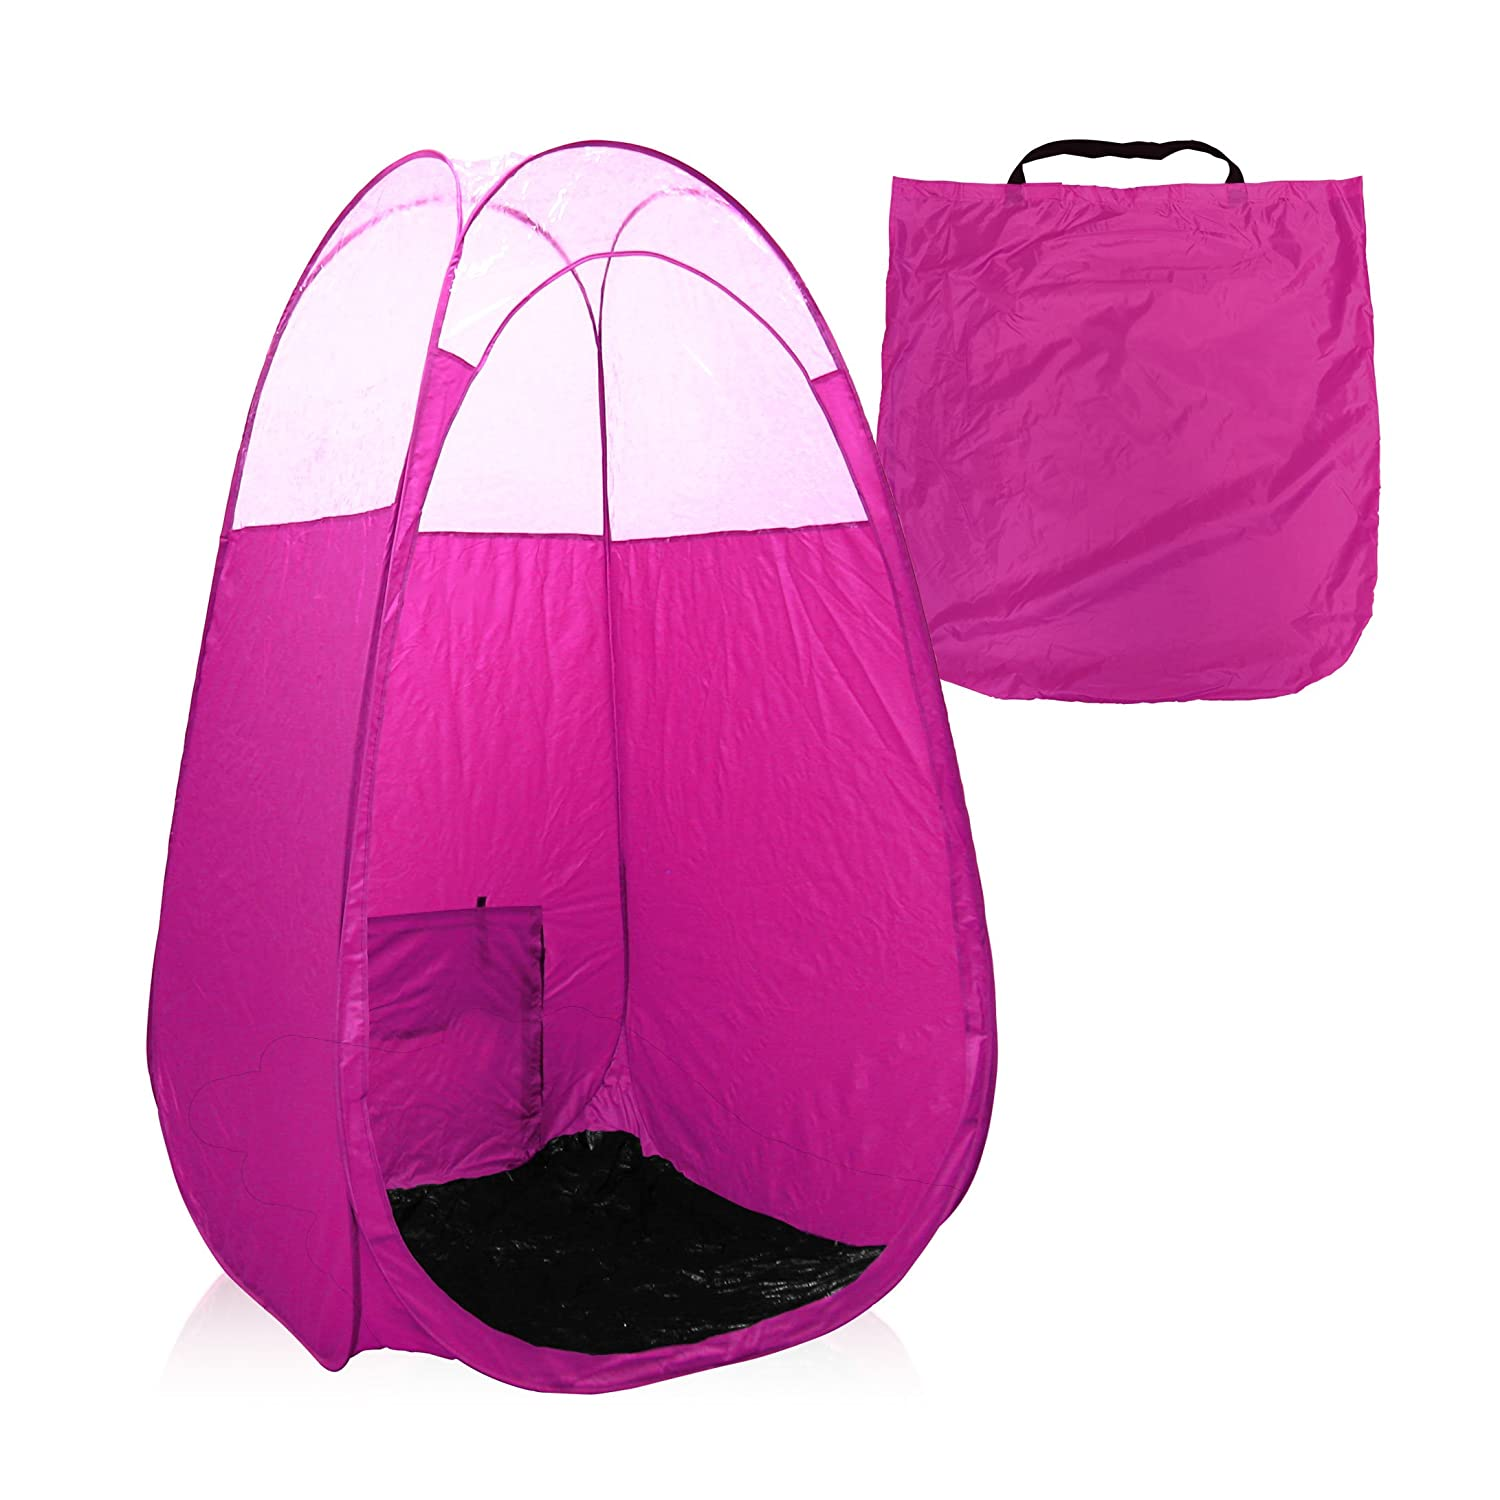 Amazon.com  Black Spray Tan Tent with Carry Bag - Large  After Sun Skin Care Moisturizers  Beauty  sc 1 st  Amazon.com & Amazon.com : Black Spray Tan Tent with Carry Bag - Large : After ...